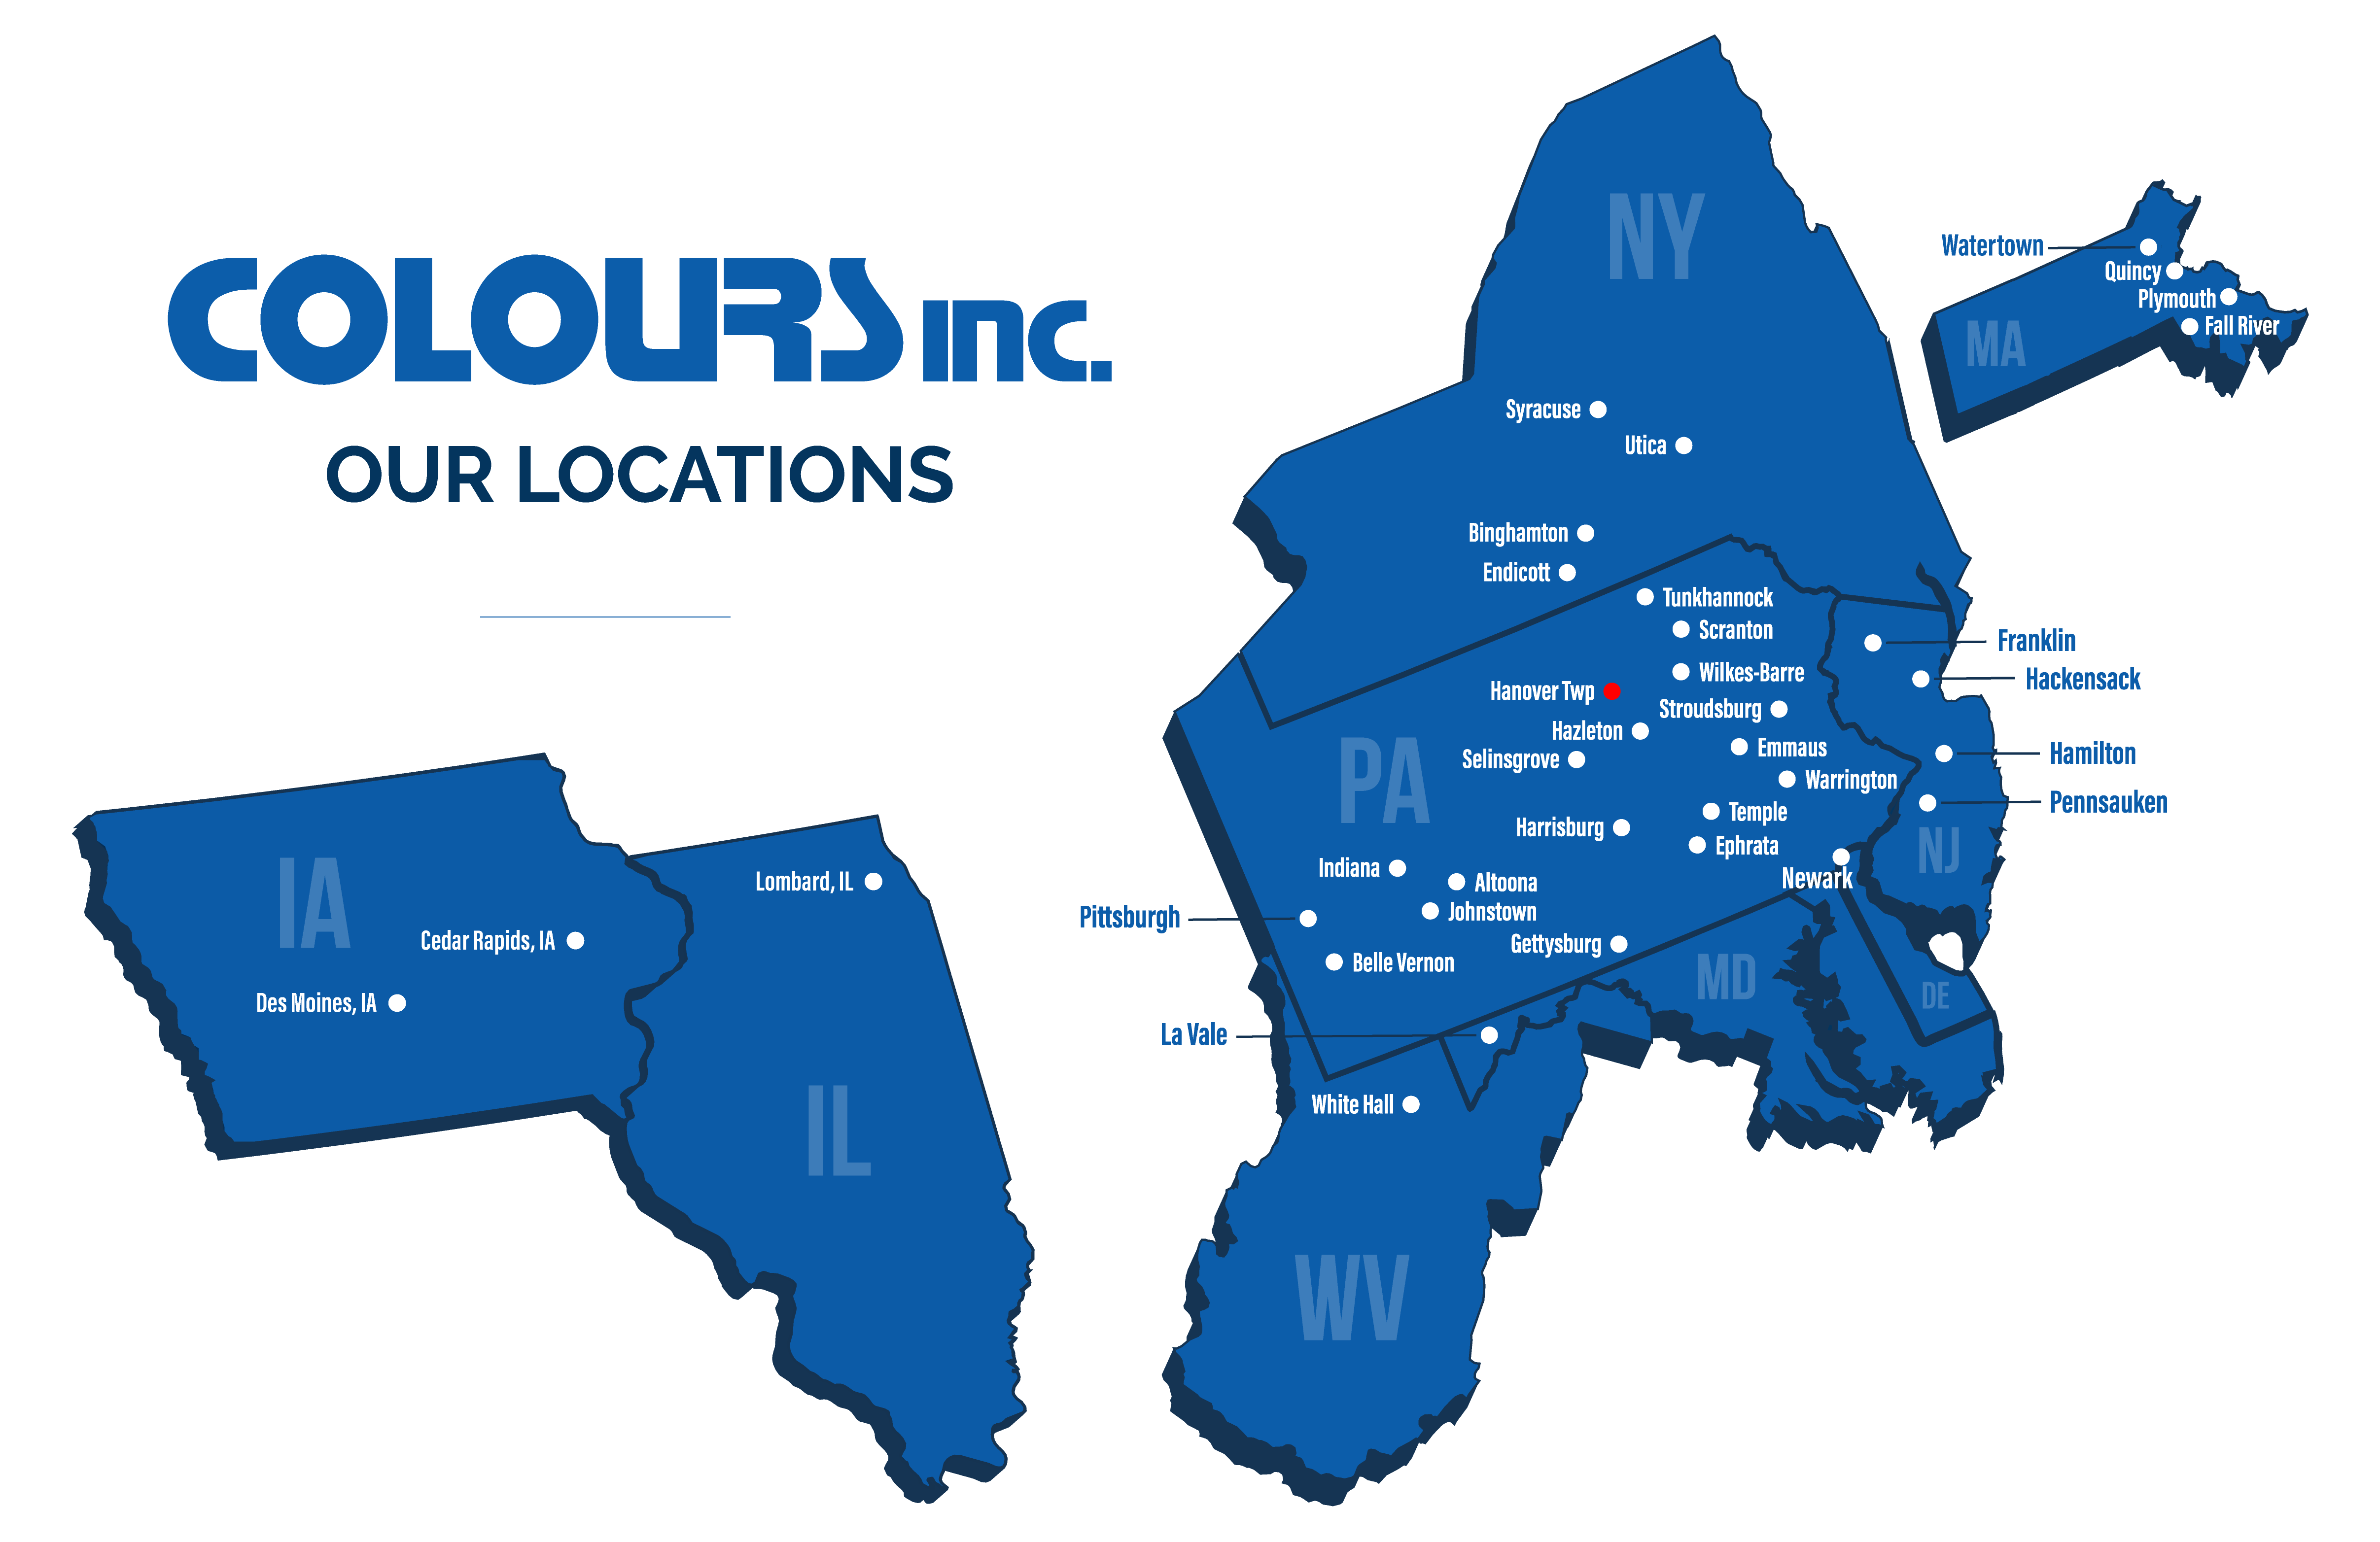 Colours Inc. Locations Map